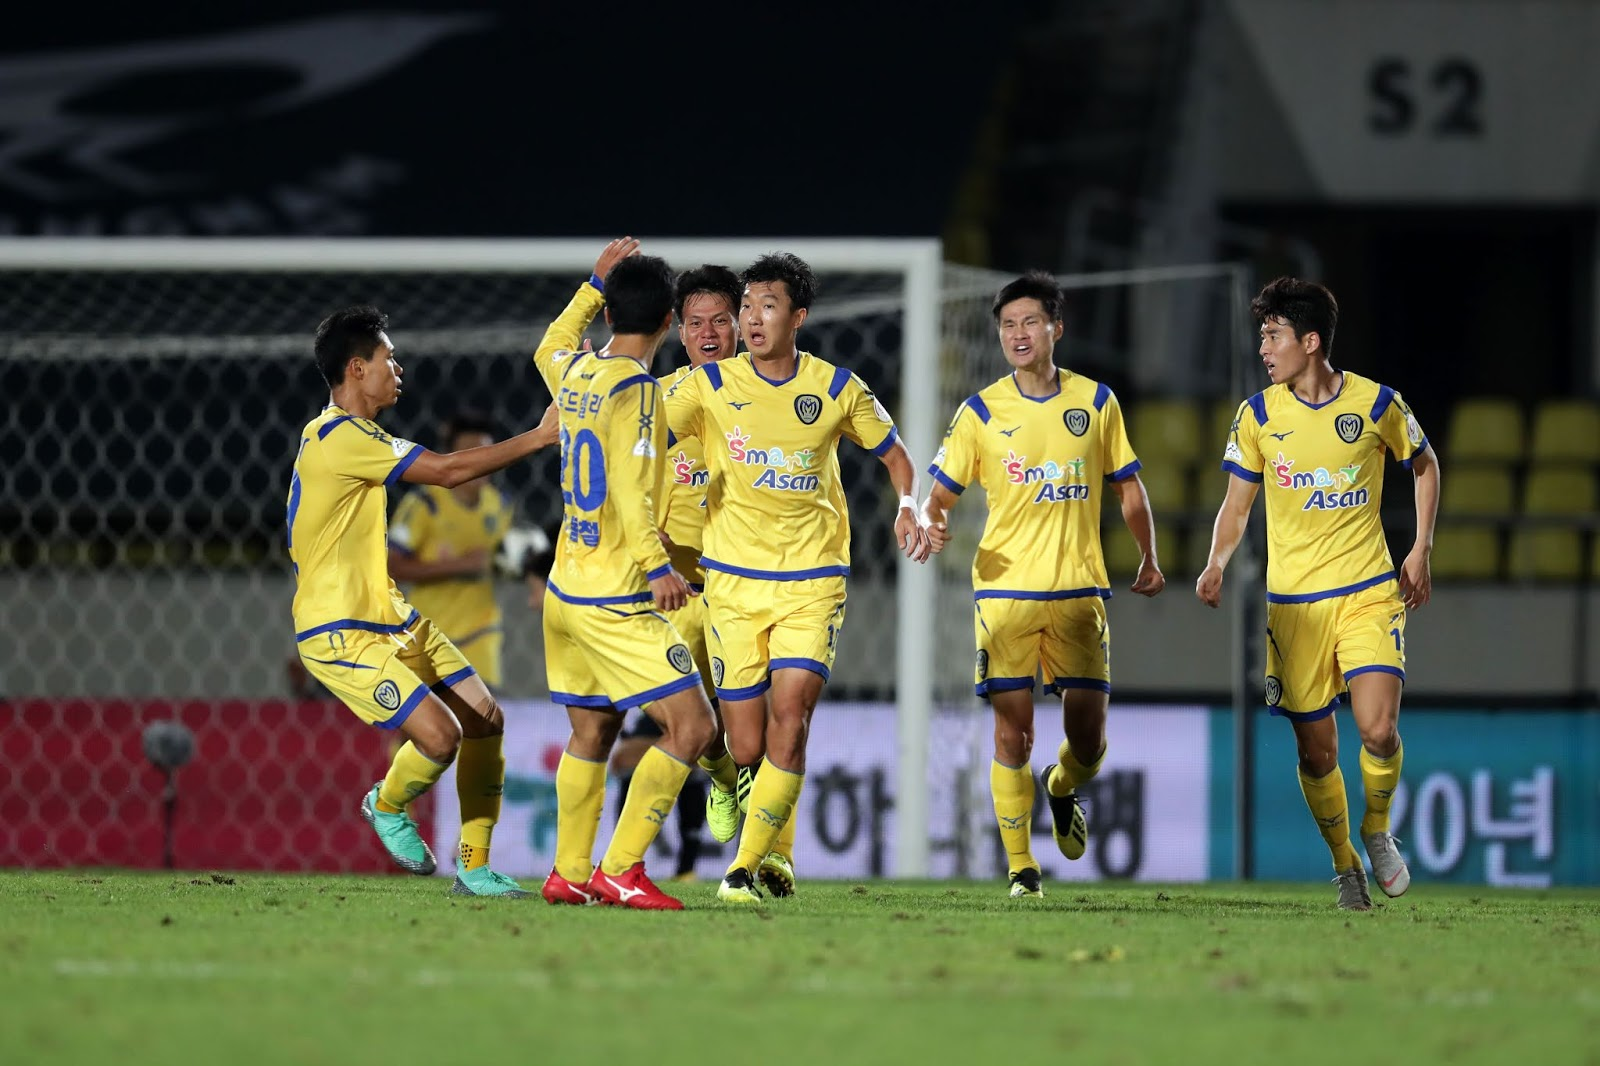 K League 2 Preview: Asan Mugunghwa vs Gwangju FC